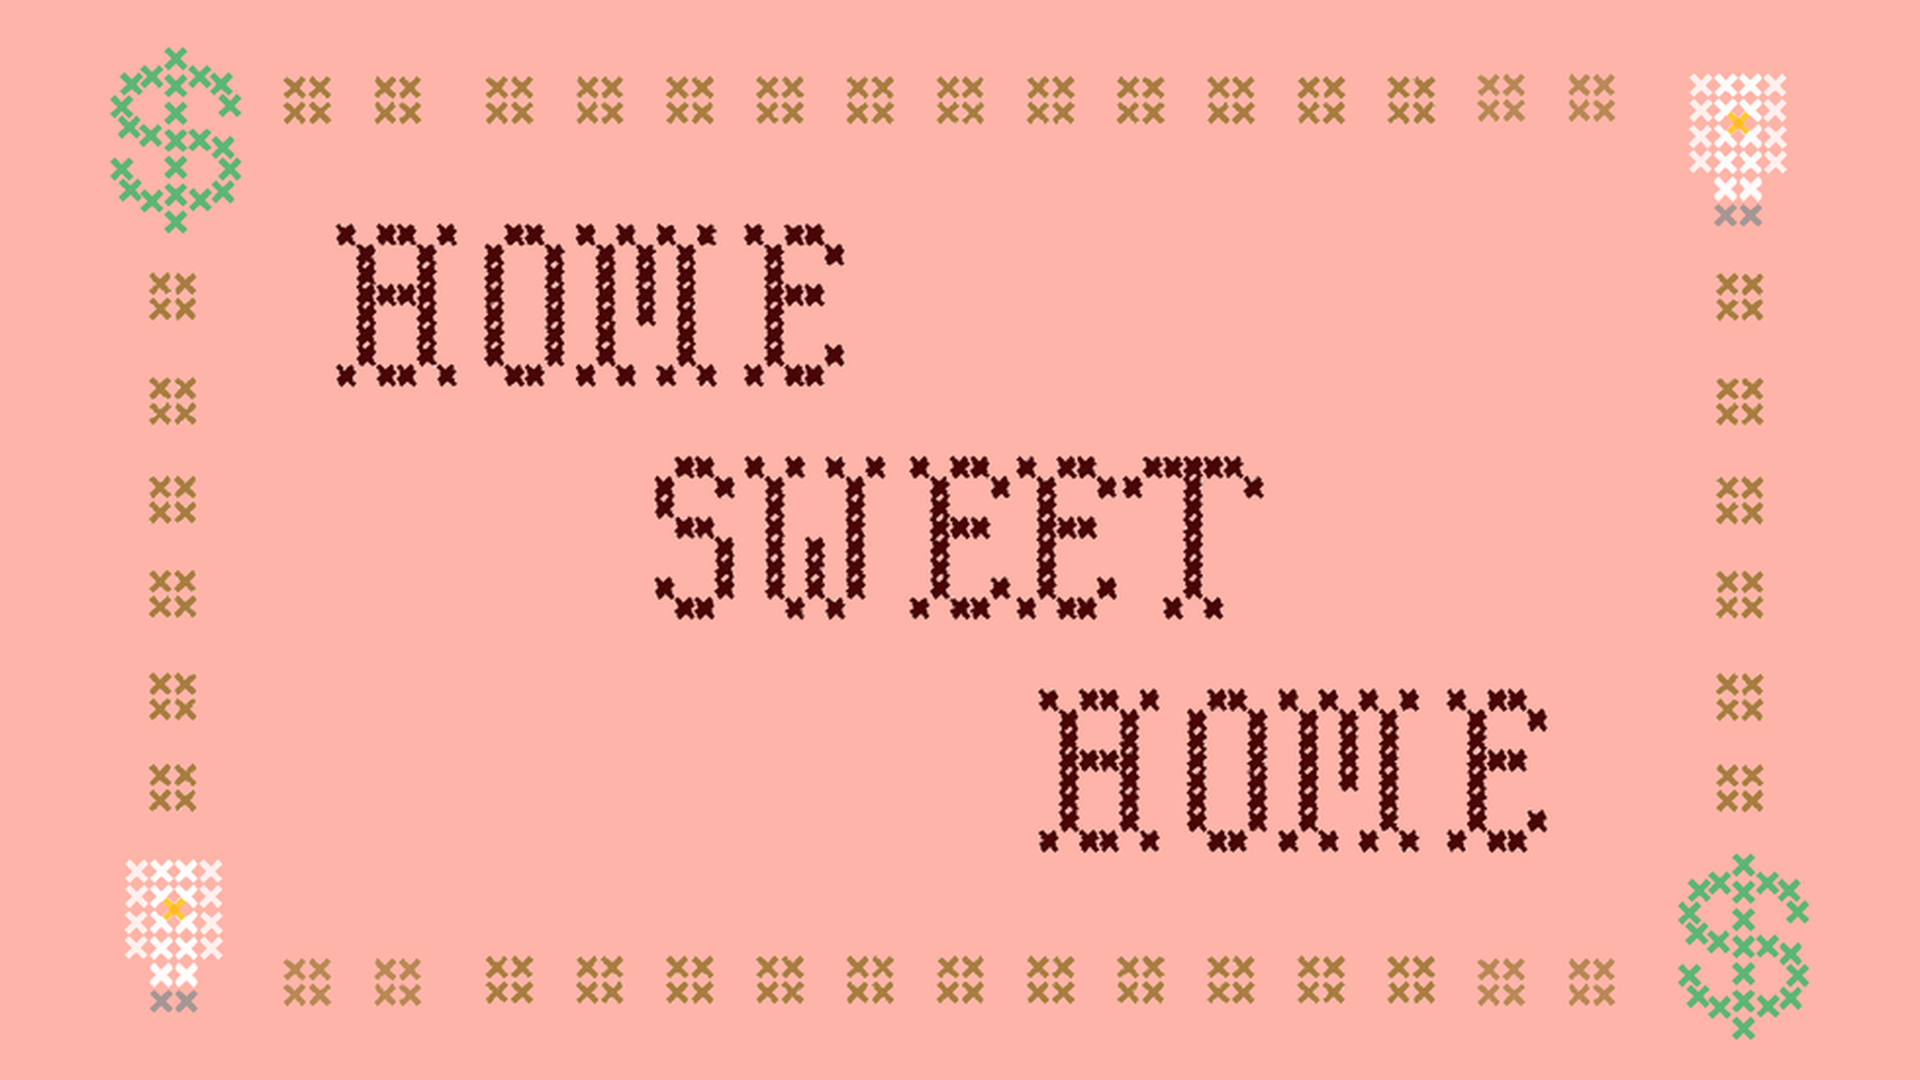 Coming home: